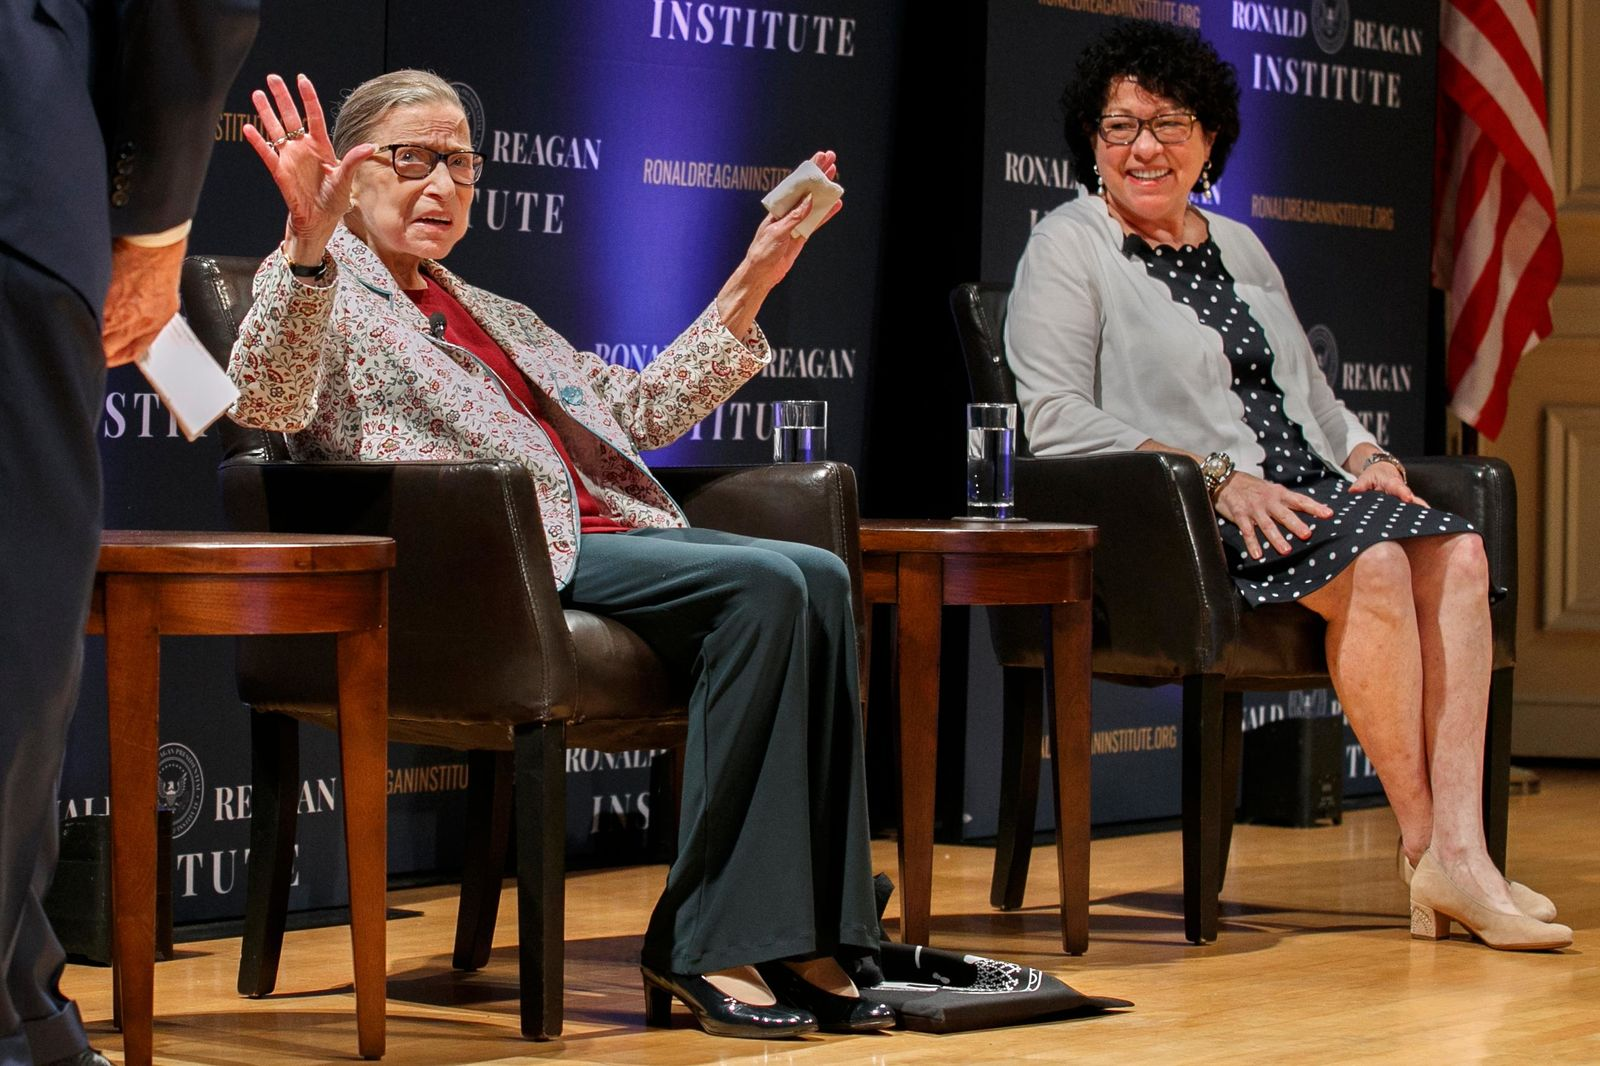 FILE - In this Sept. 25, 2019 file photo, Supreme Court Justice Ruth Bader Ginsburg, left, holds up her hands as she and Supreme Court Justice Sonia Sotomayor arrive to applause for a panel discussion celebrating Sandra Day O'Connor, the first woman to be a Supreme Court Justice, at the Library of Congress in Washington. (AP Photo/Jacquelyn Martin)